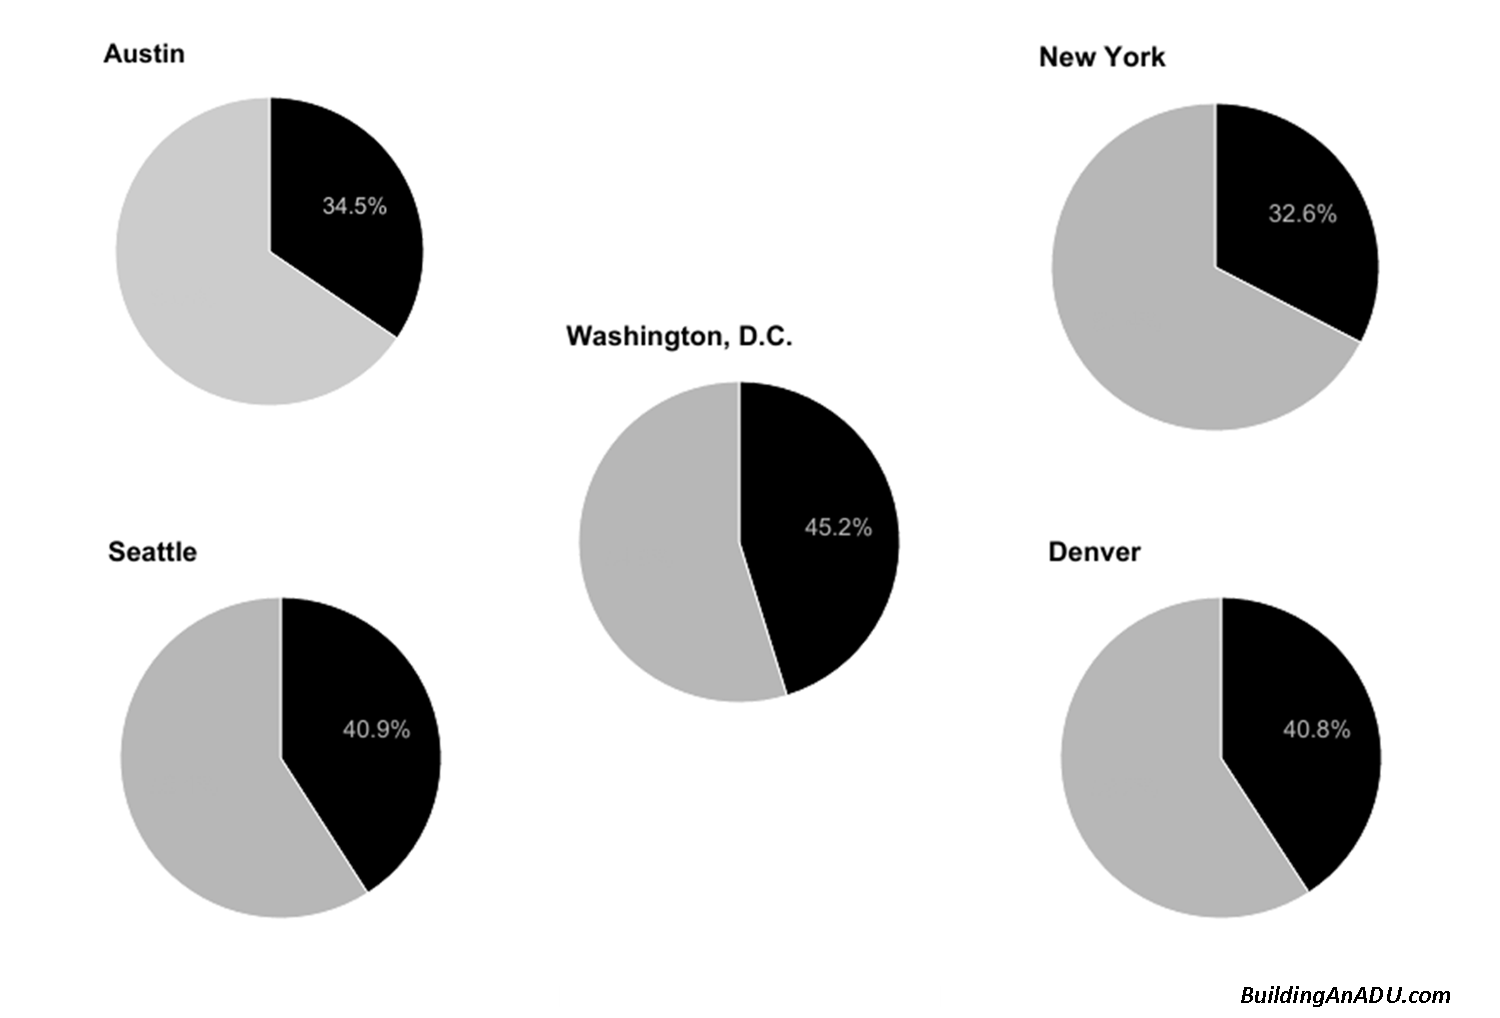 The dark sections represent the percent of one person households in 2014.   http://furmancenter.org/files/NYUFurmanCenter_RespondingtoChangingHouseholds_2014_1.pdf